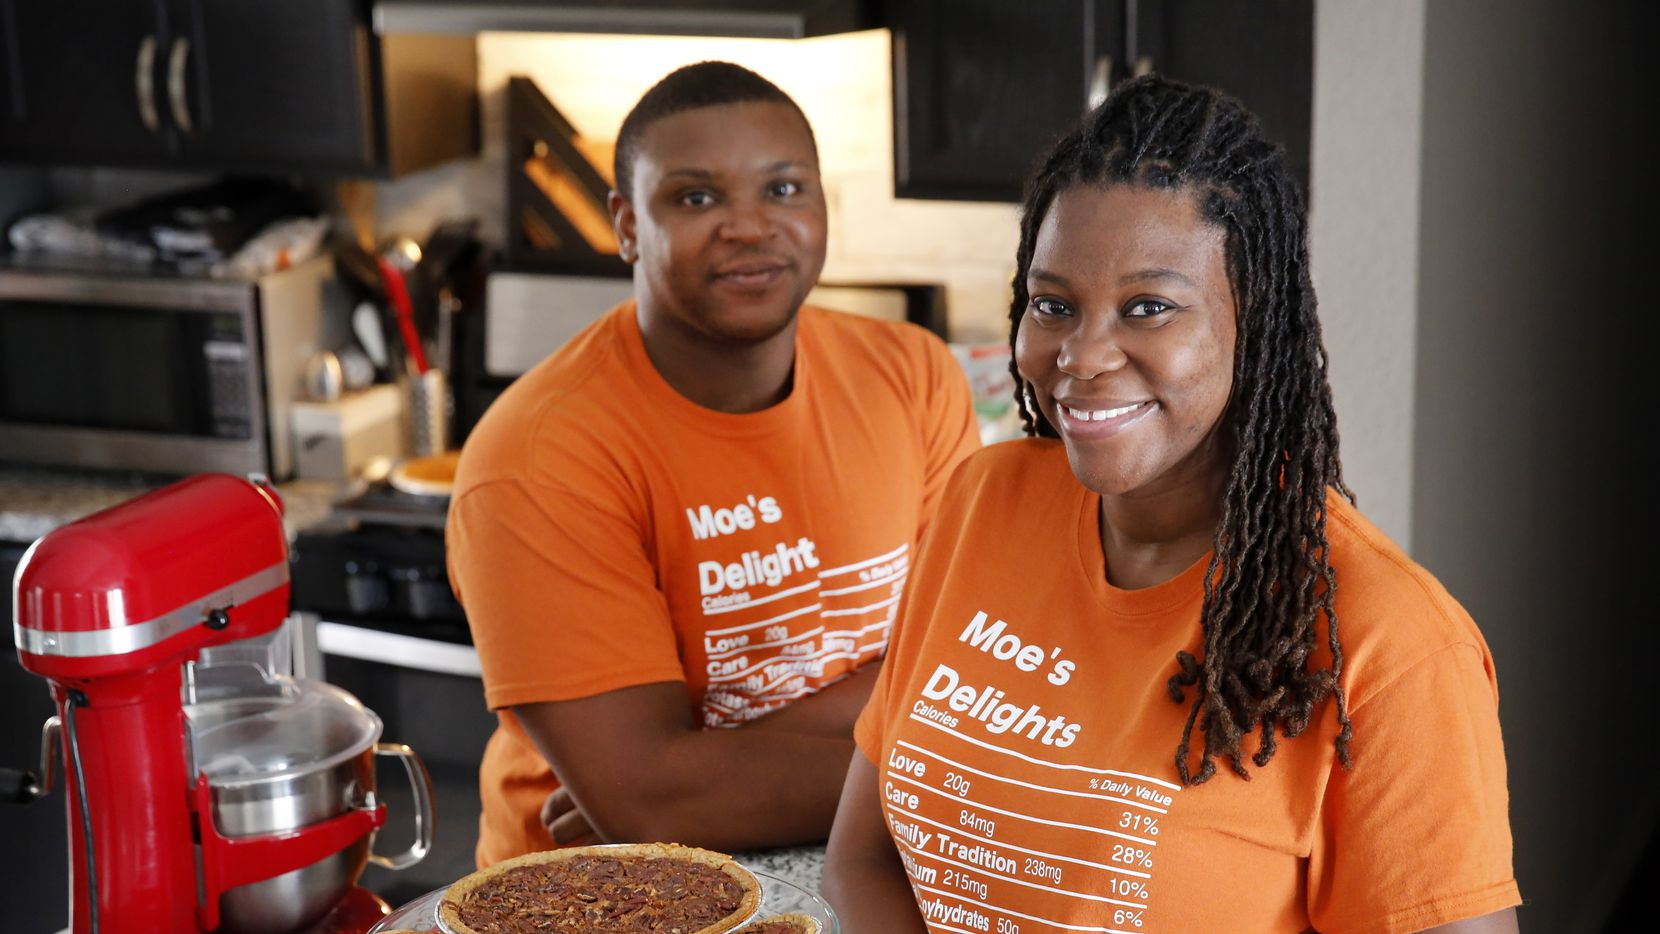 Monisha Clifton (pictured with her husband, Nicholas) started her home-based business, Moe's Delights, after baking pies for friends and family.